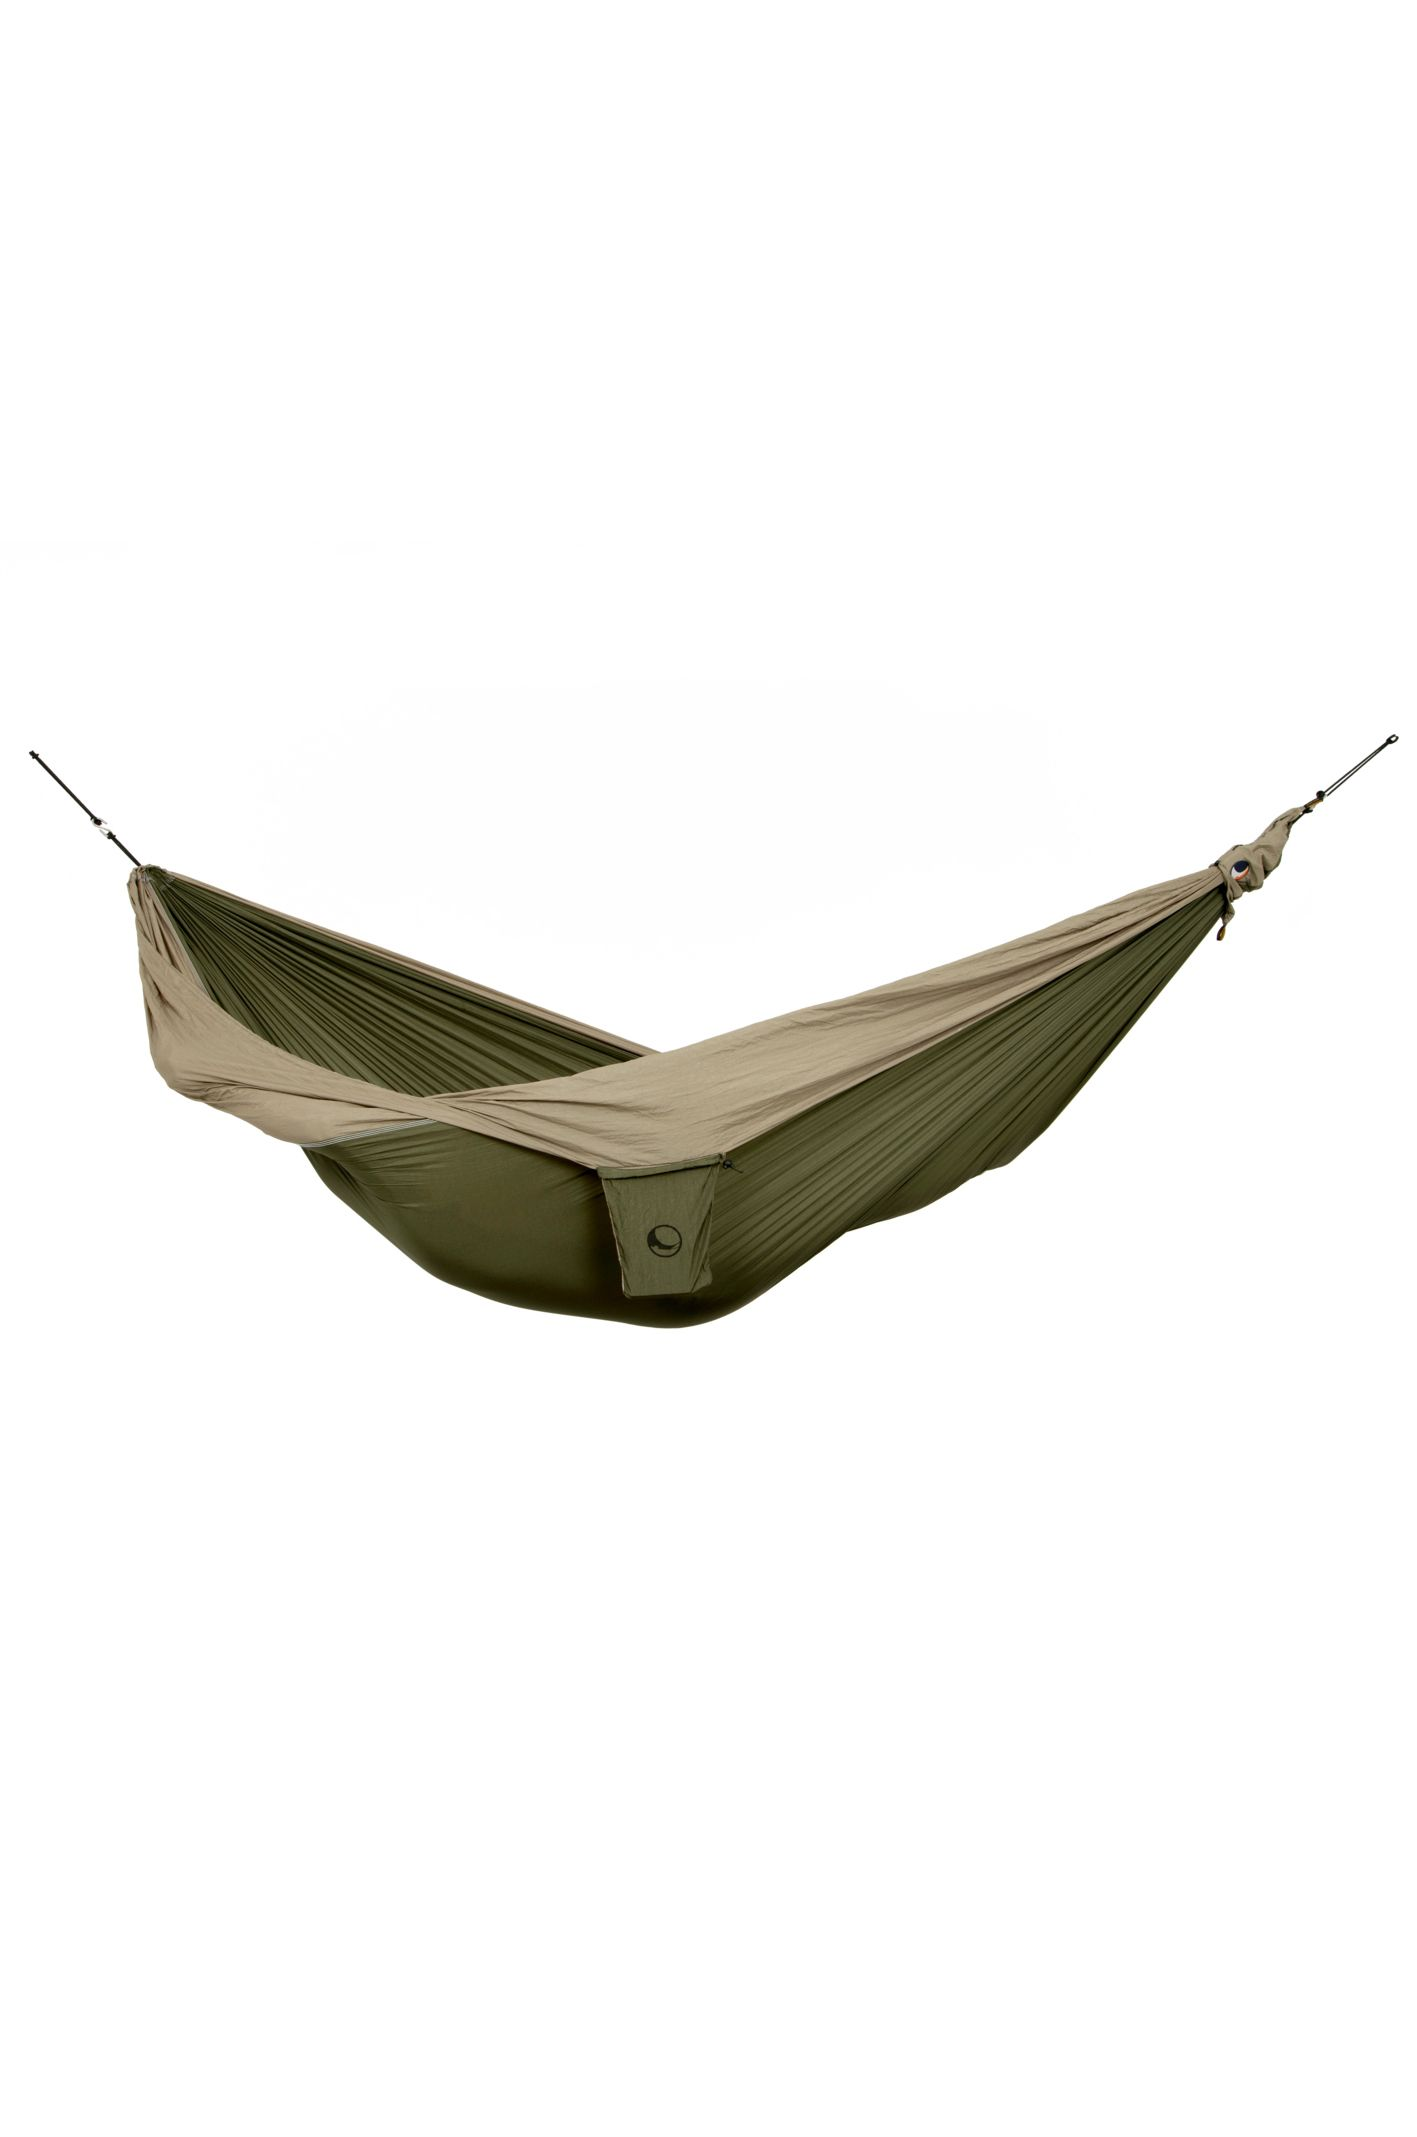 DV Ticket To The Moon KING SIZE HAMMOCK Army Green/Brown